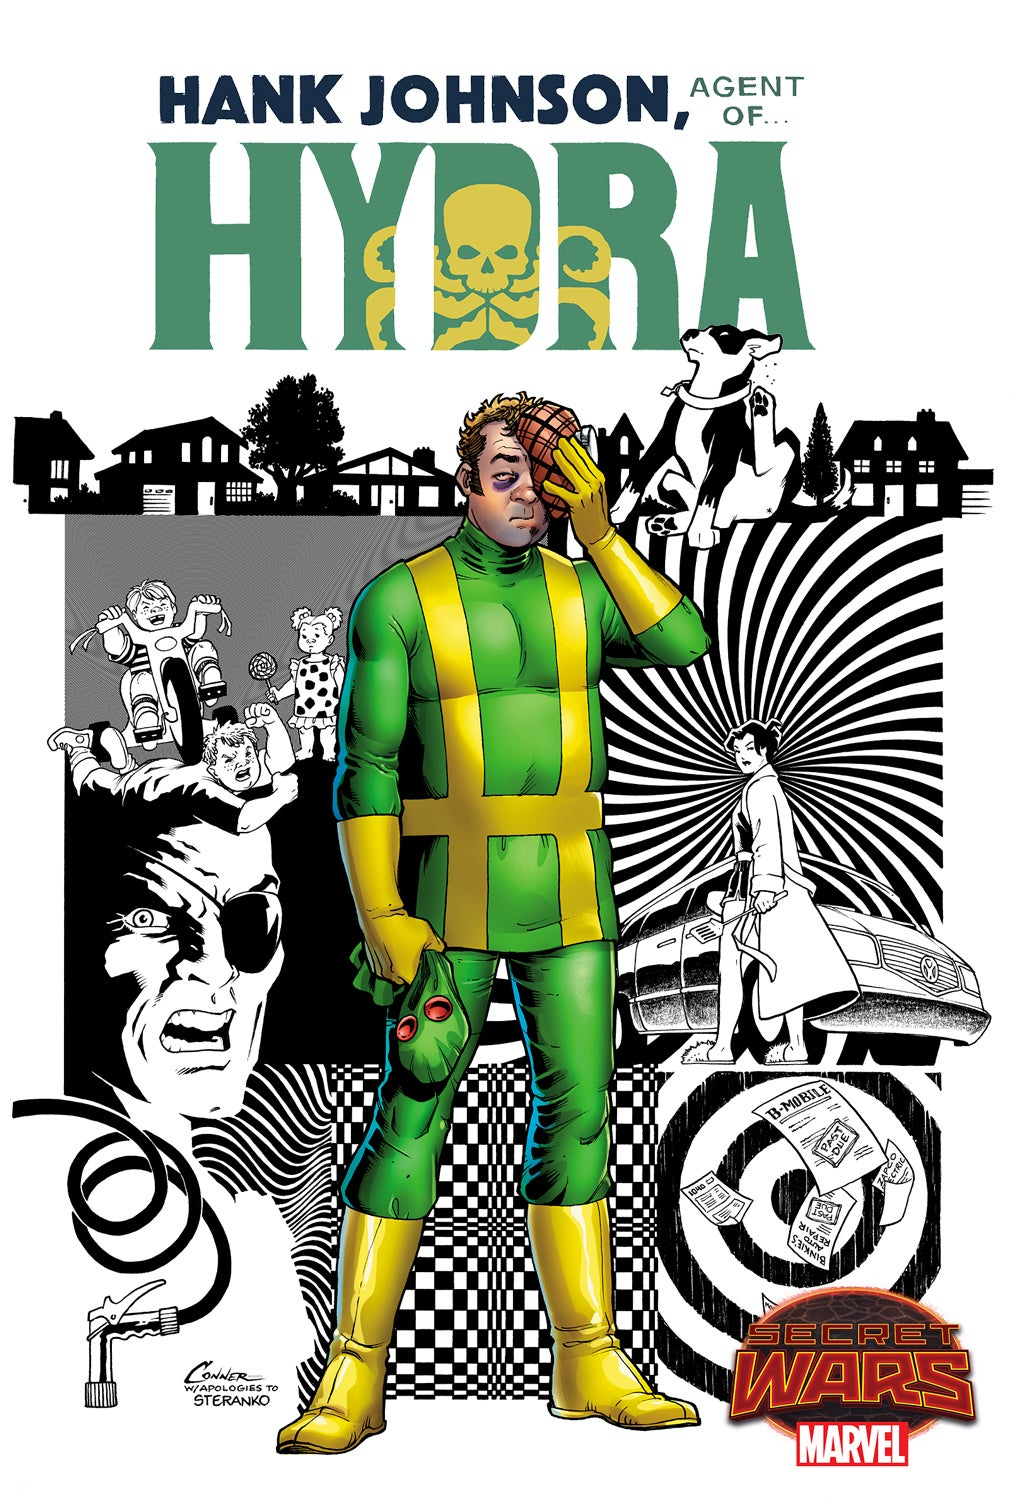 Hank Johnson Agent of Hydra Conner Cover